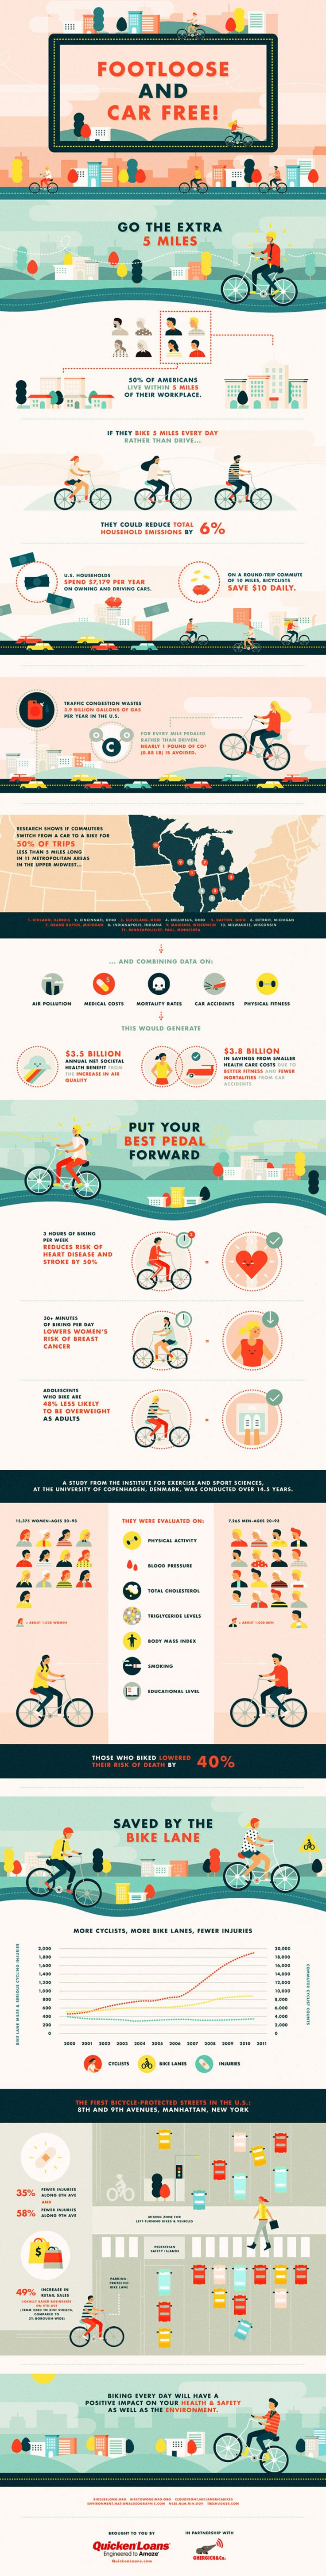 Footloose and Car Free! How Biking Can Improve Your Health and the Environment Infographic